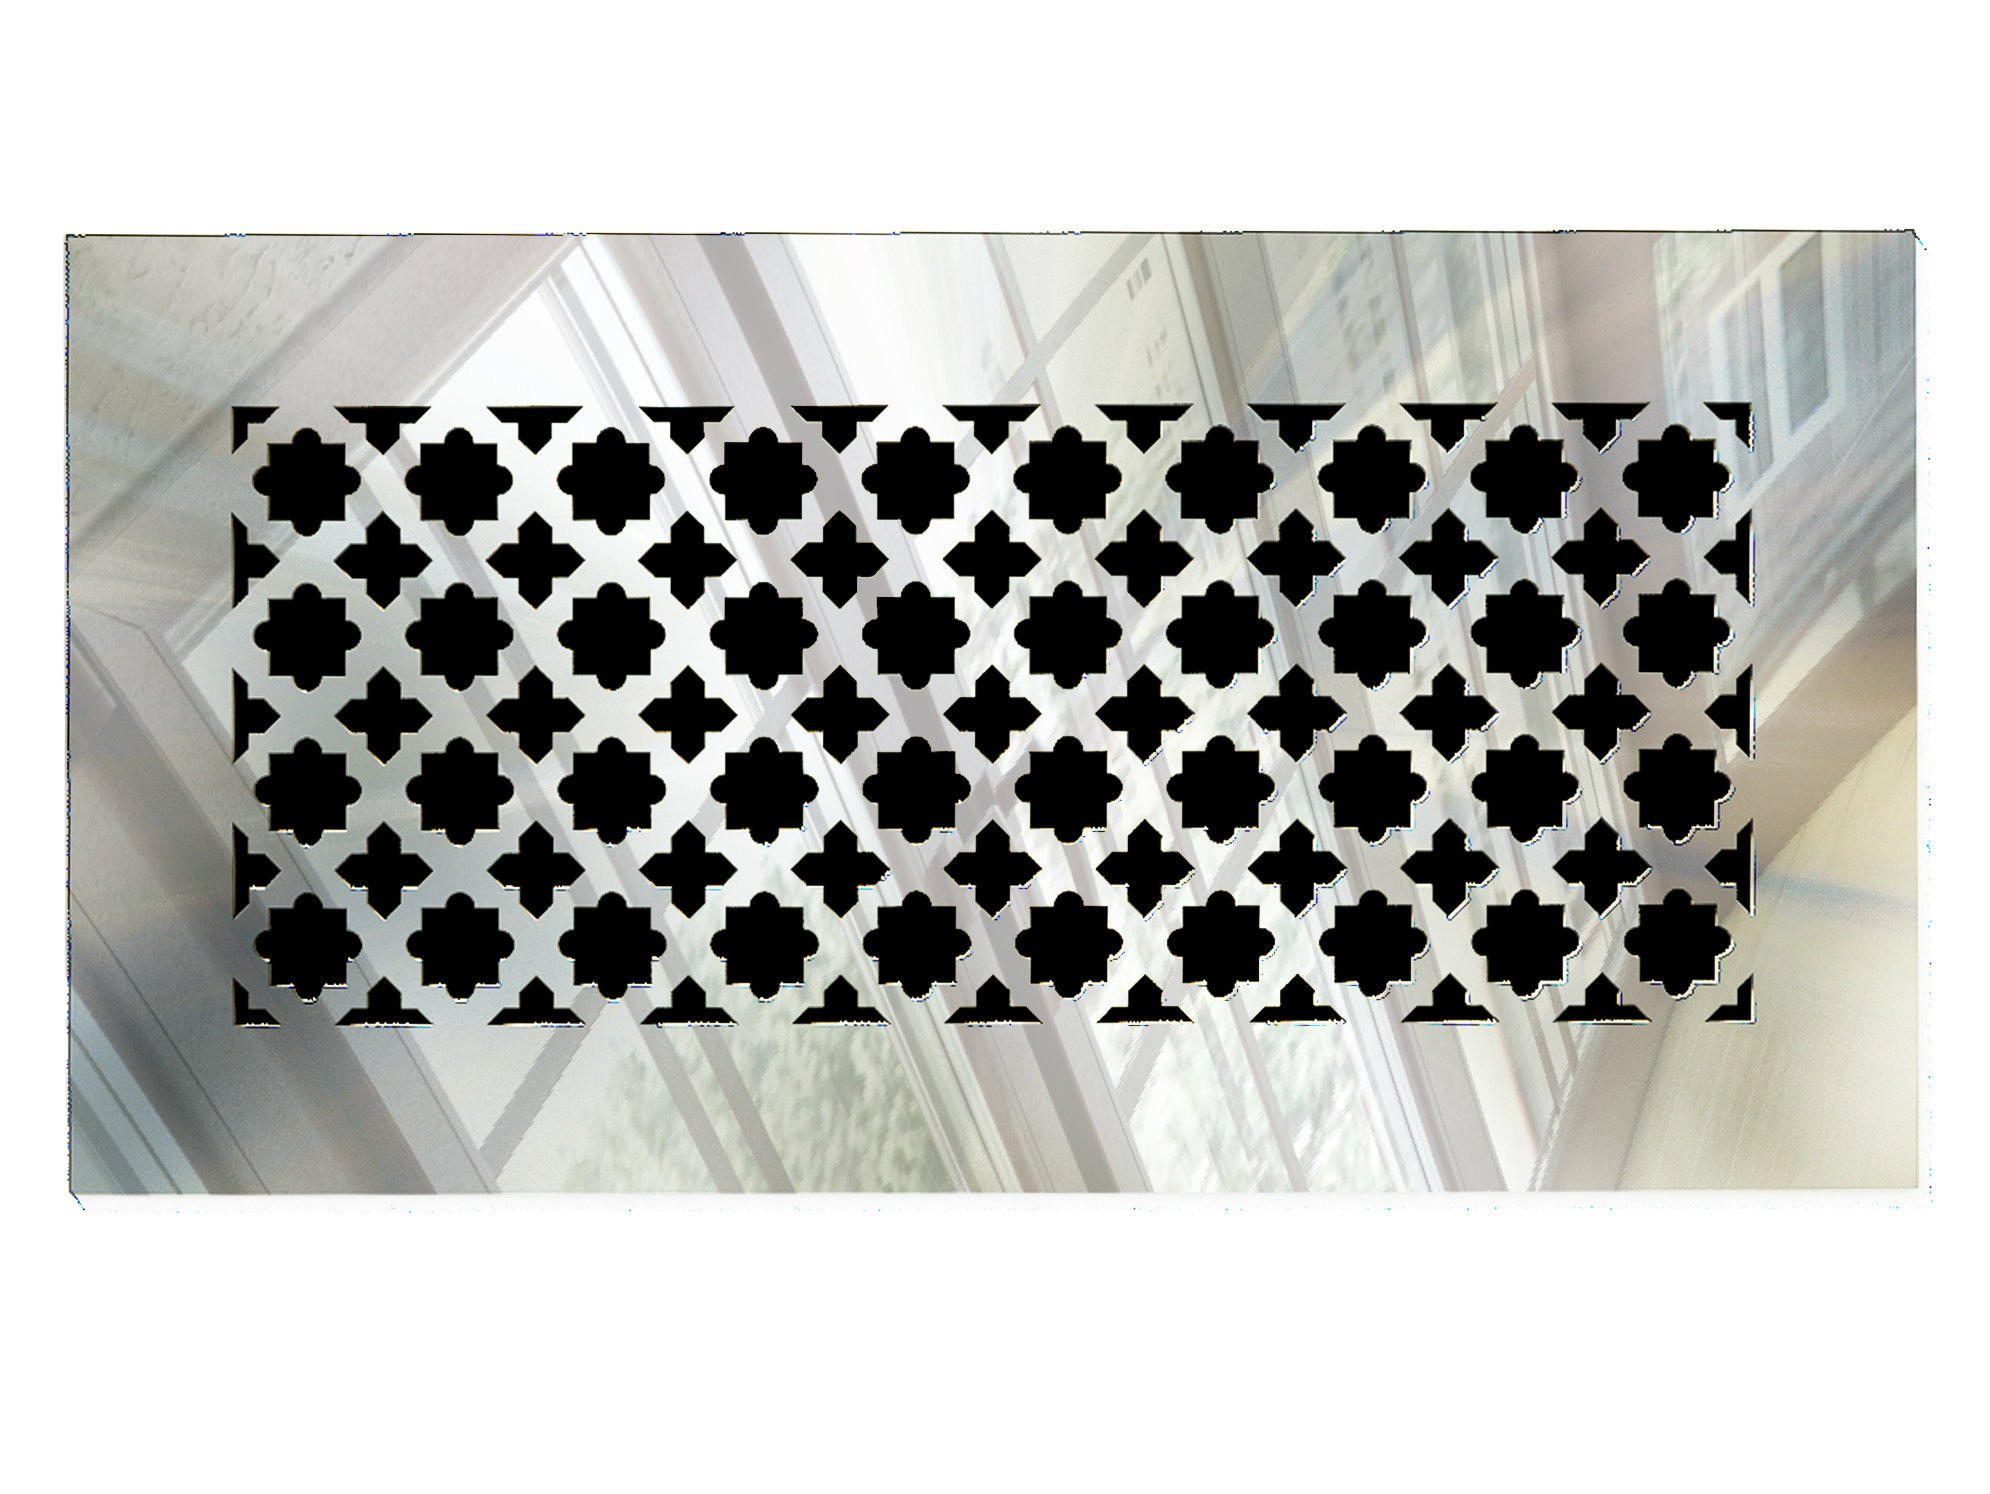 Saba Air Vent Cover Grille - Acrylic Fiberglass 10'' x 6'' Duct Opening (12'' x 8'' Overall) Mirror Finish Decorative Register Covers for Walls and Ceilings not for Floor use, Venetian